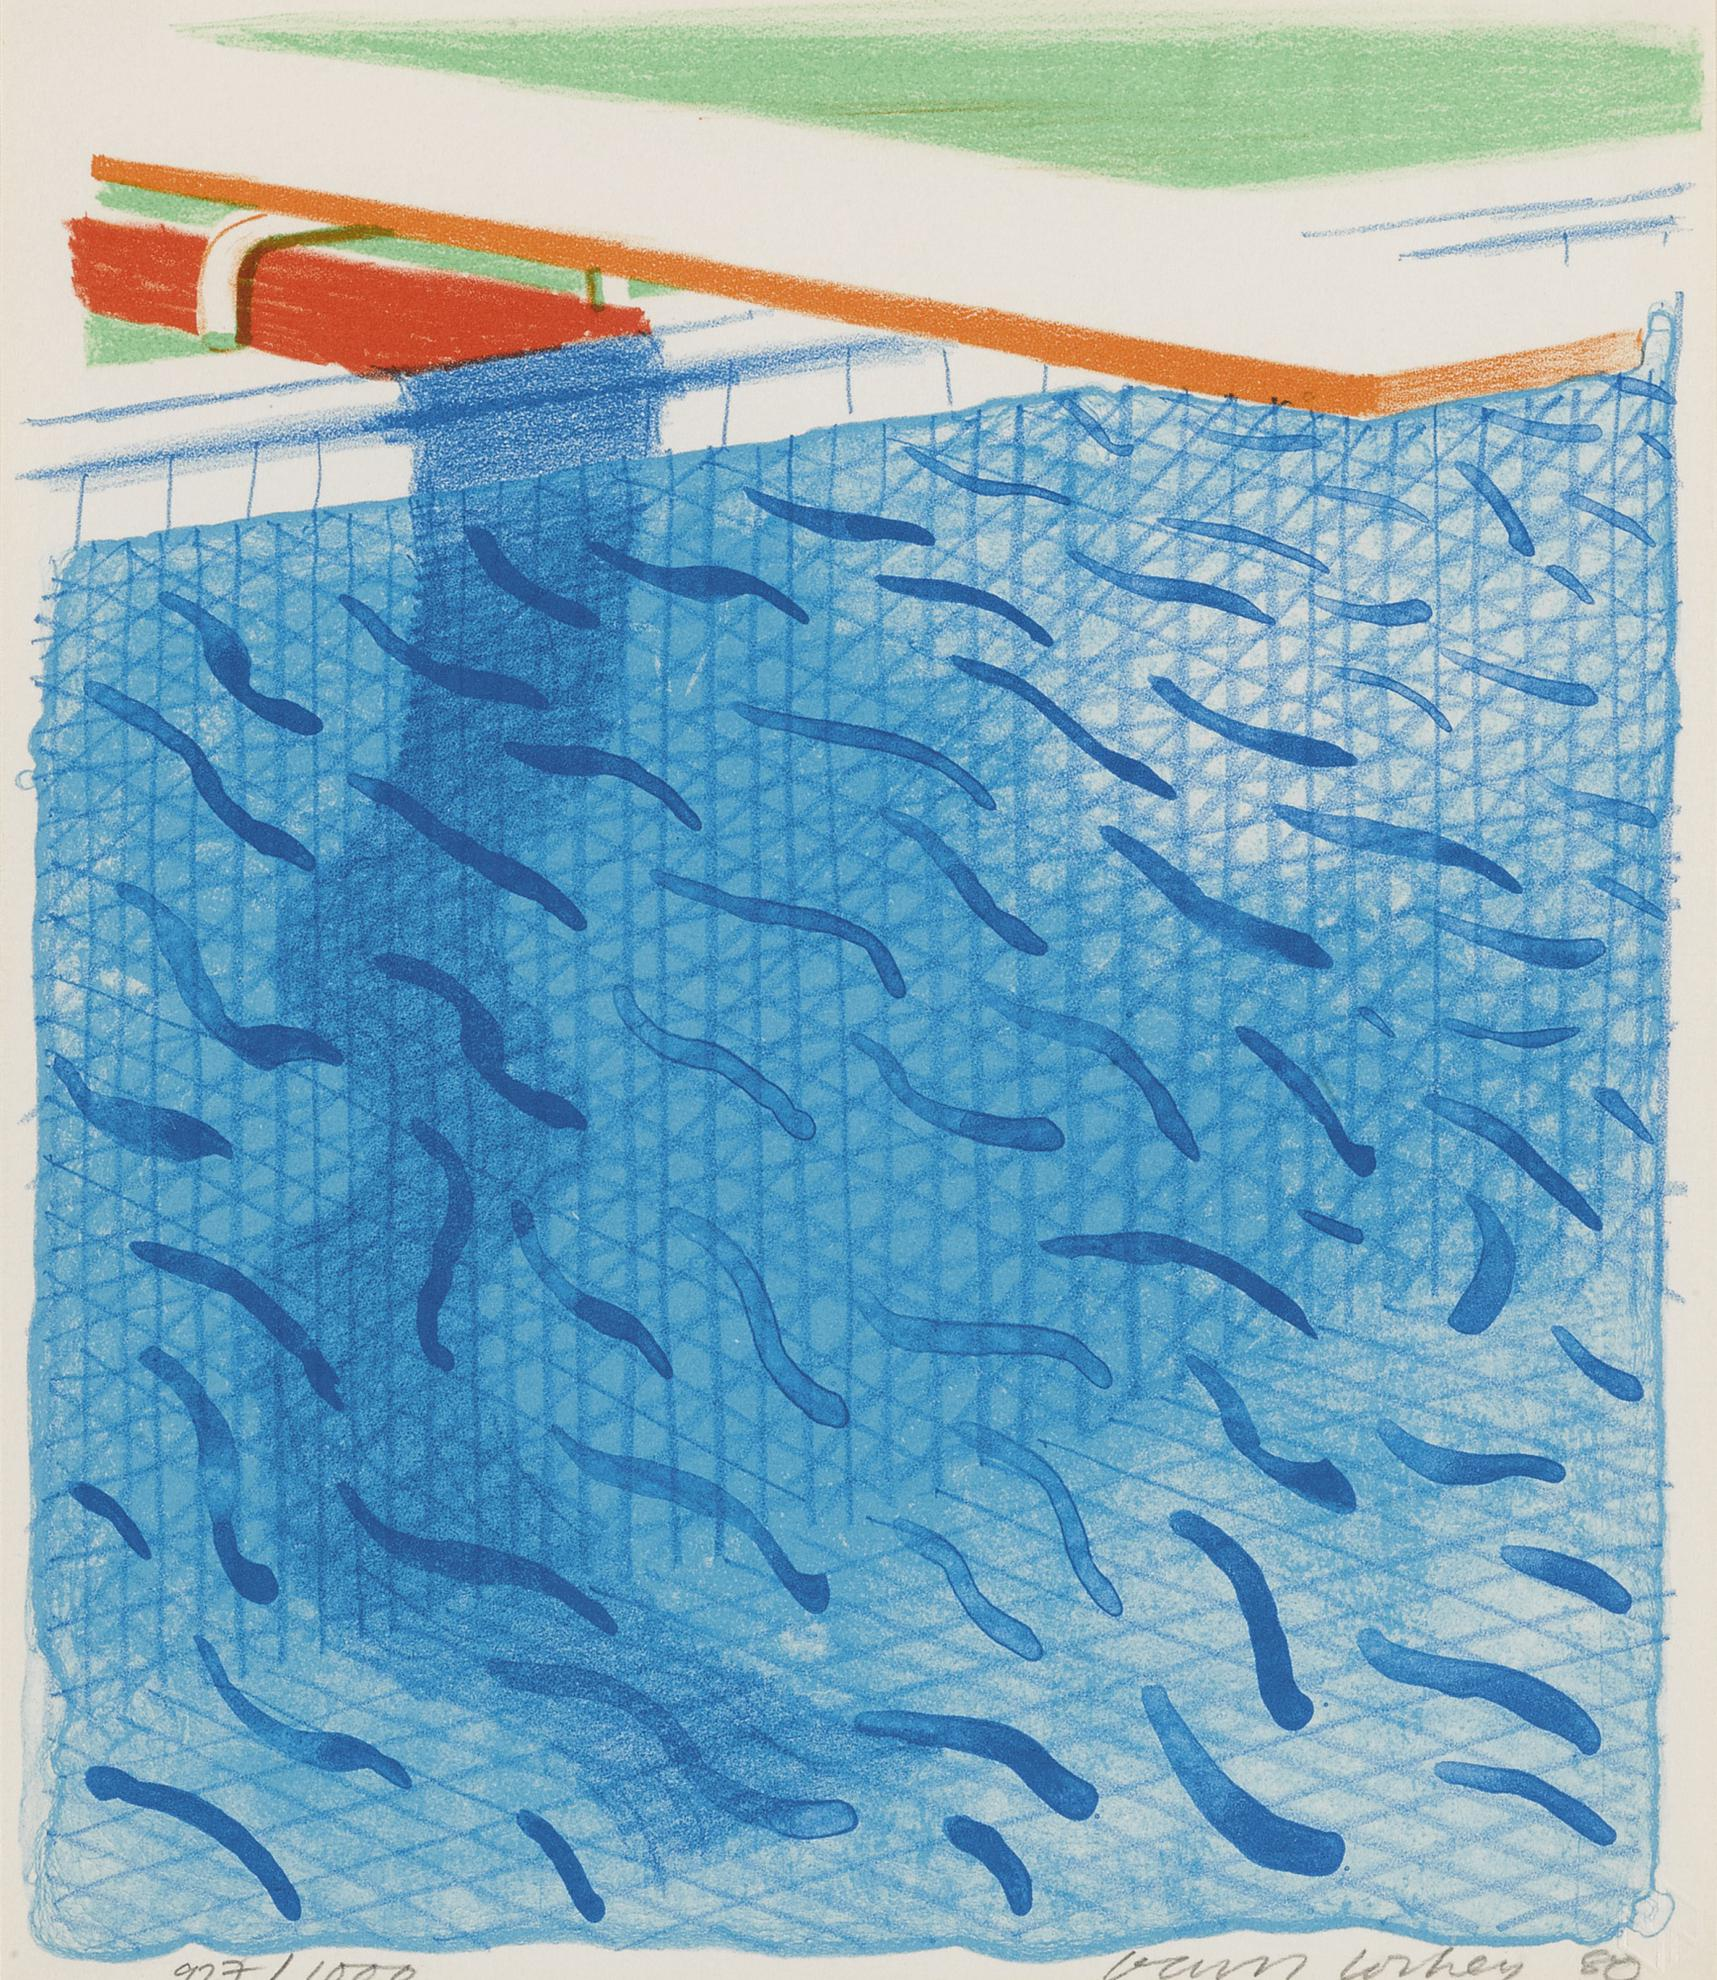 David Hockney-Pool Made With Paper And Blue Ink For Book (M.C.A.T. 234; Tyler 269)-1980